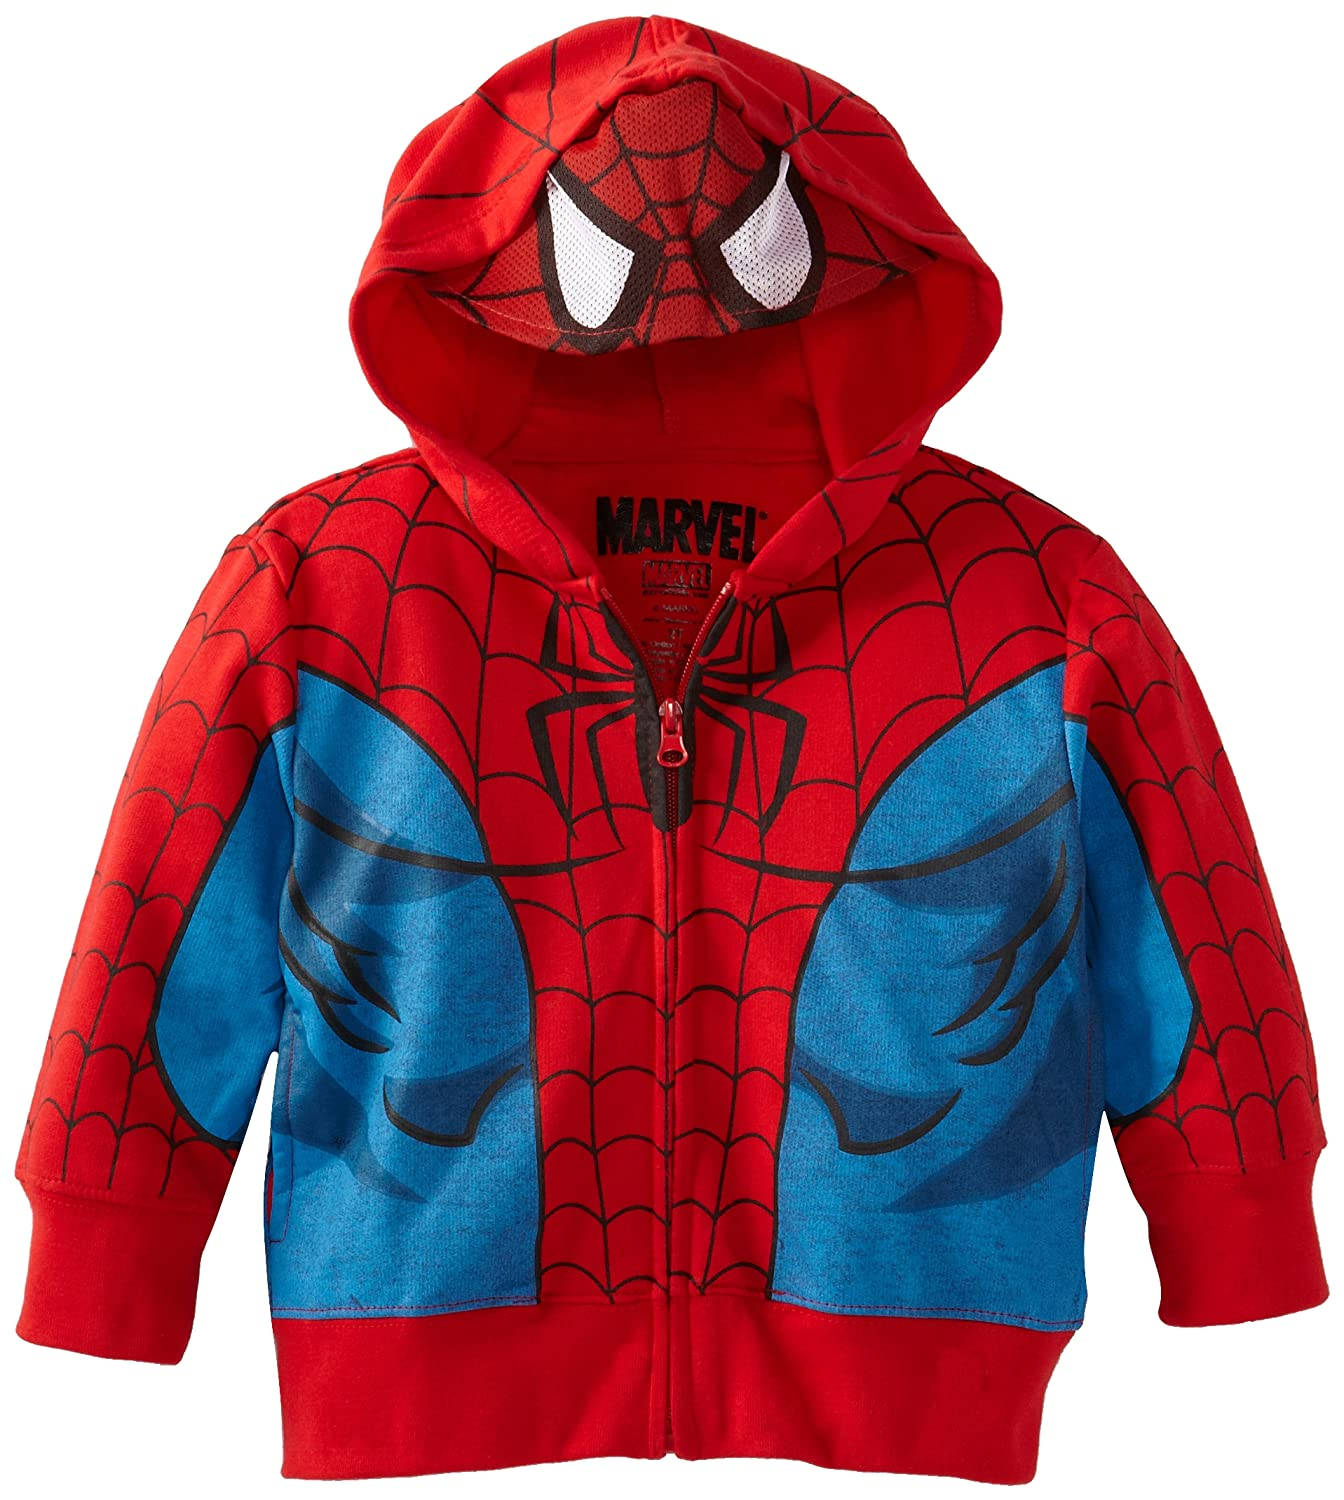 Marvel Boys' Spider-Man Hoodie with Mask